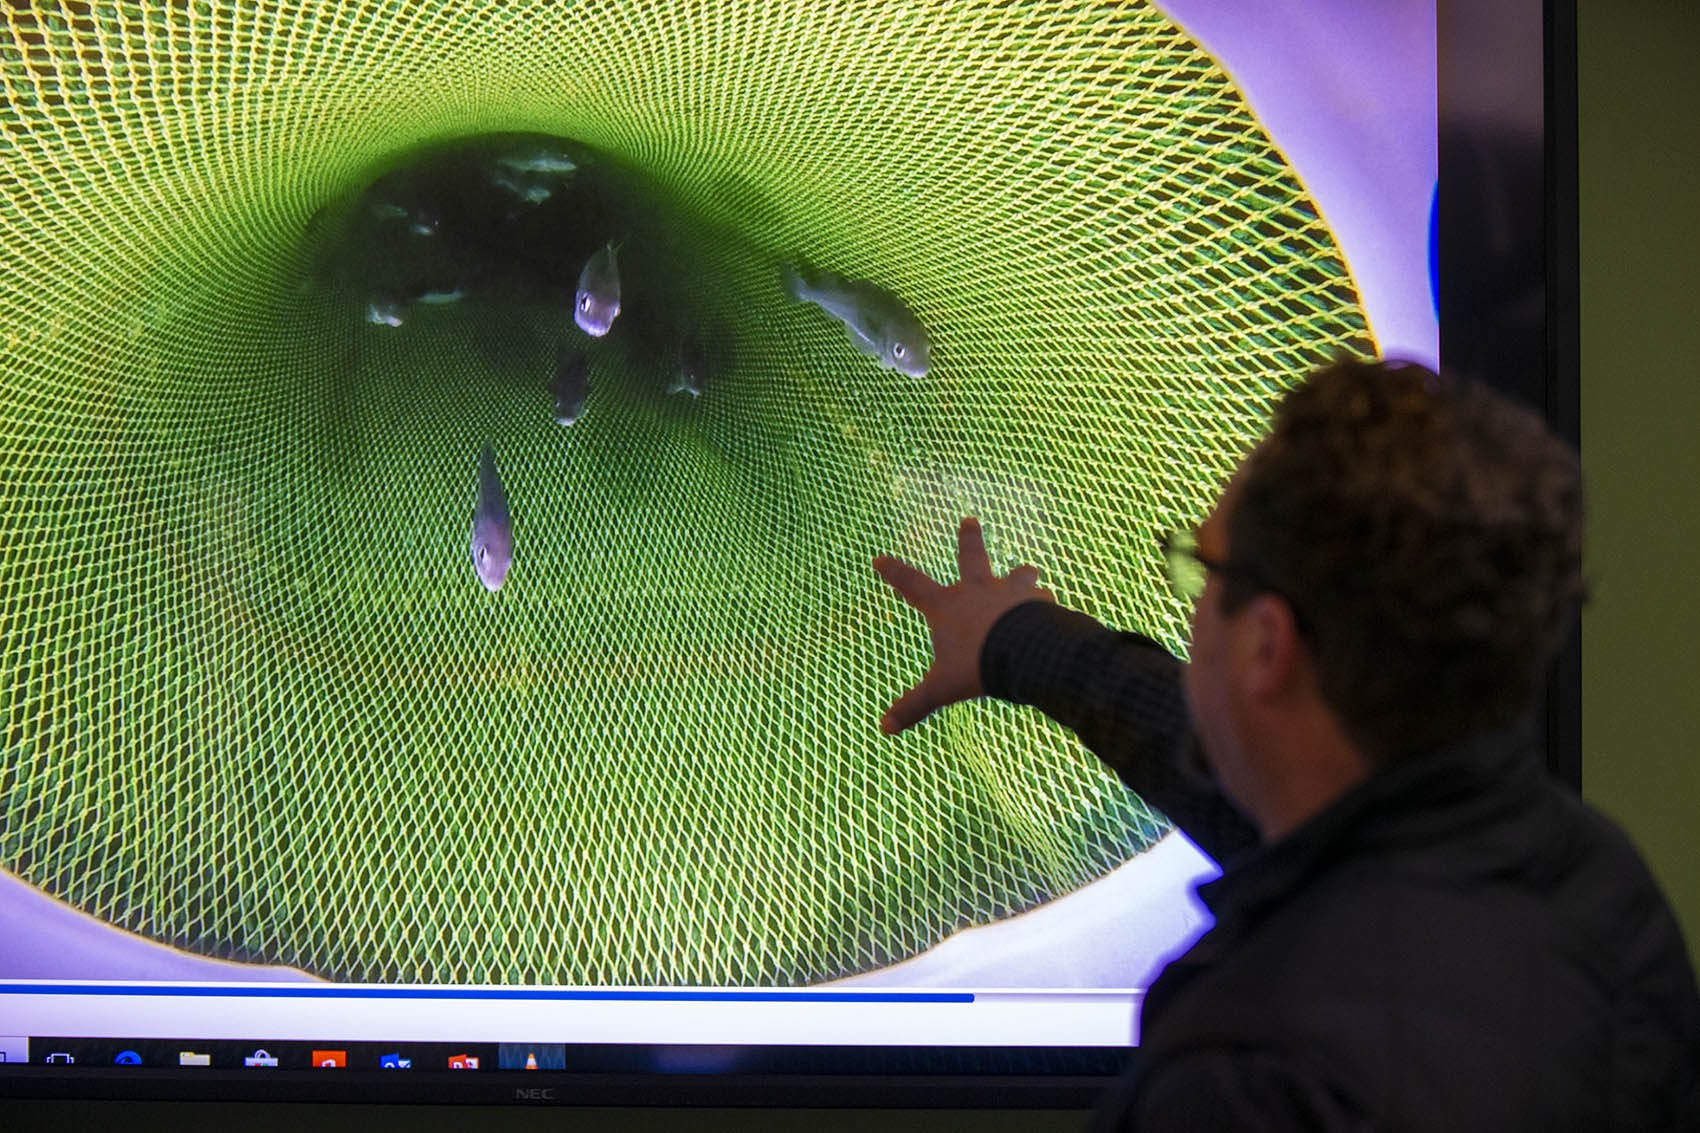 Spherical Analytics CBO Chris Rezendes points at a large screen with a video of cod fish passing through a fishing net at the UMass Dartmouth Oceanography Operations Lab at the Mass. Division of Marine Fisheries. (Jesse Costa/WBUR)